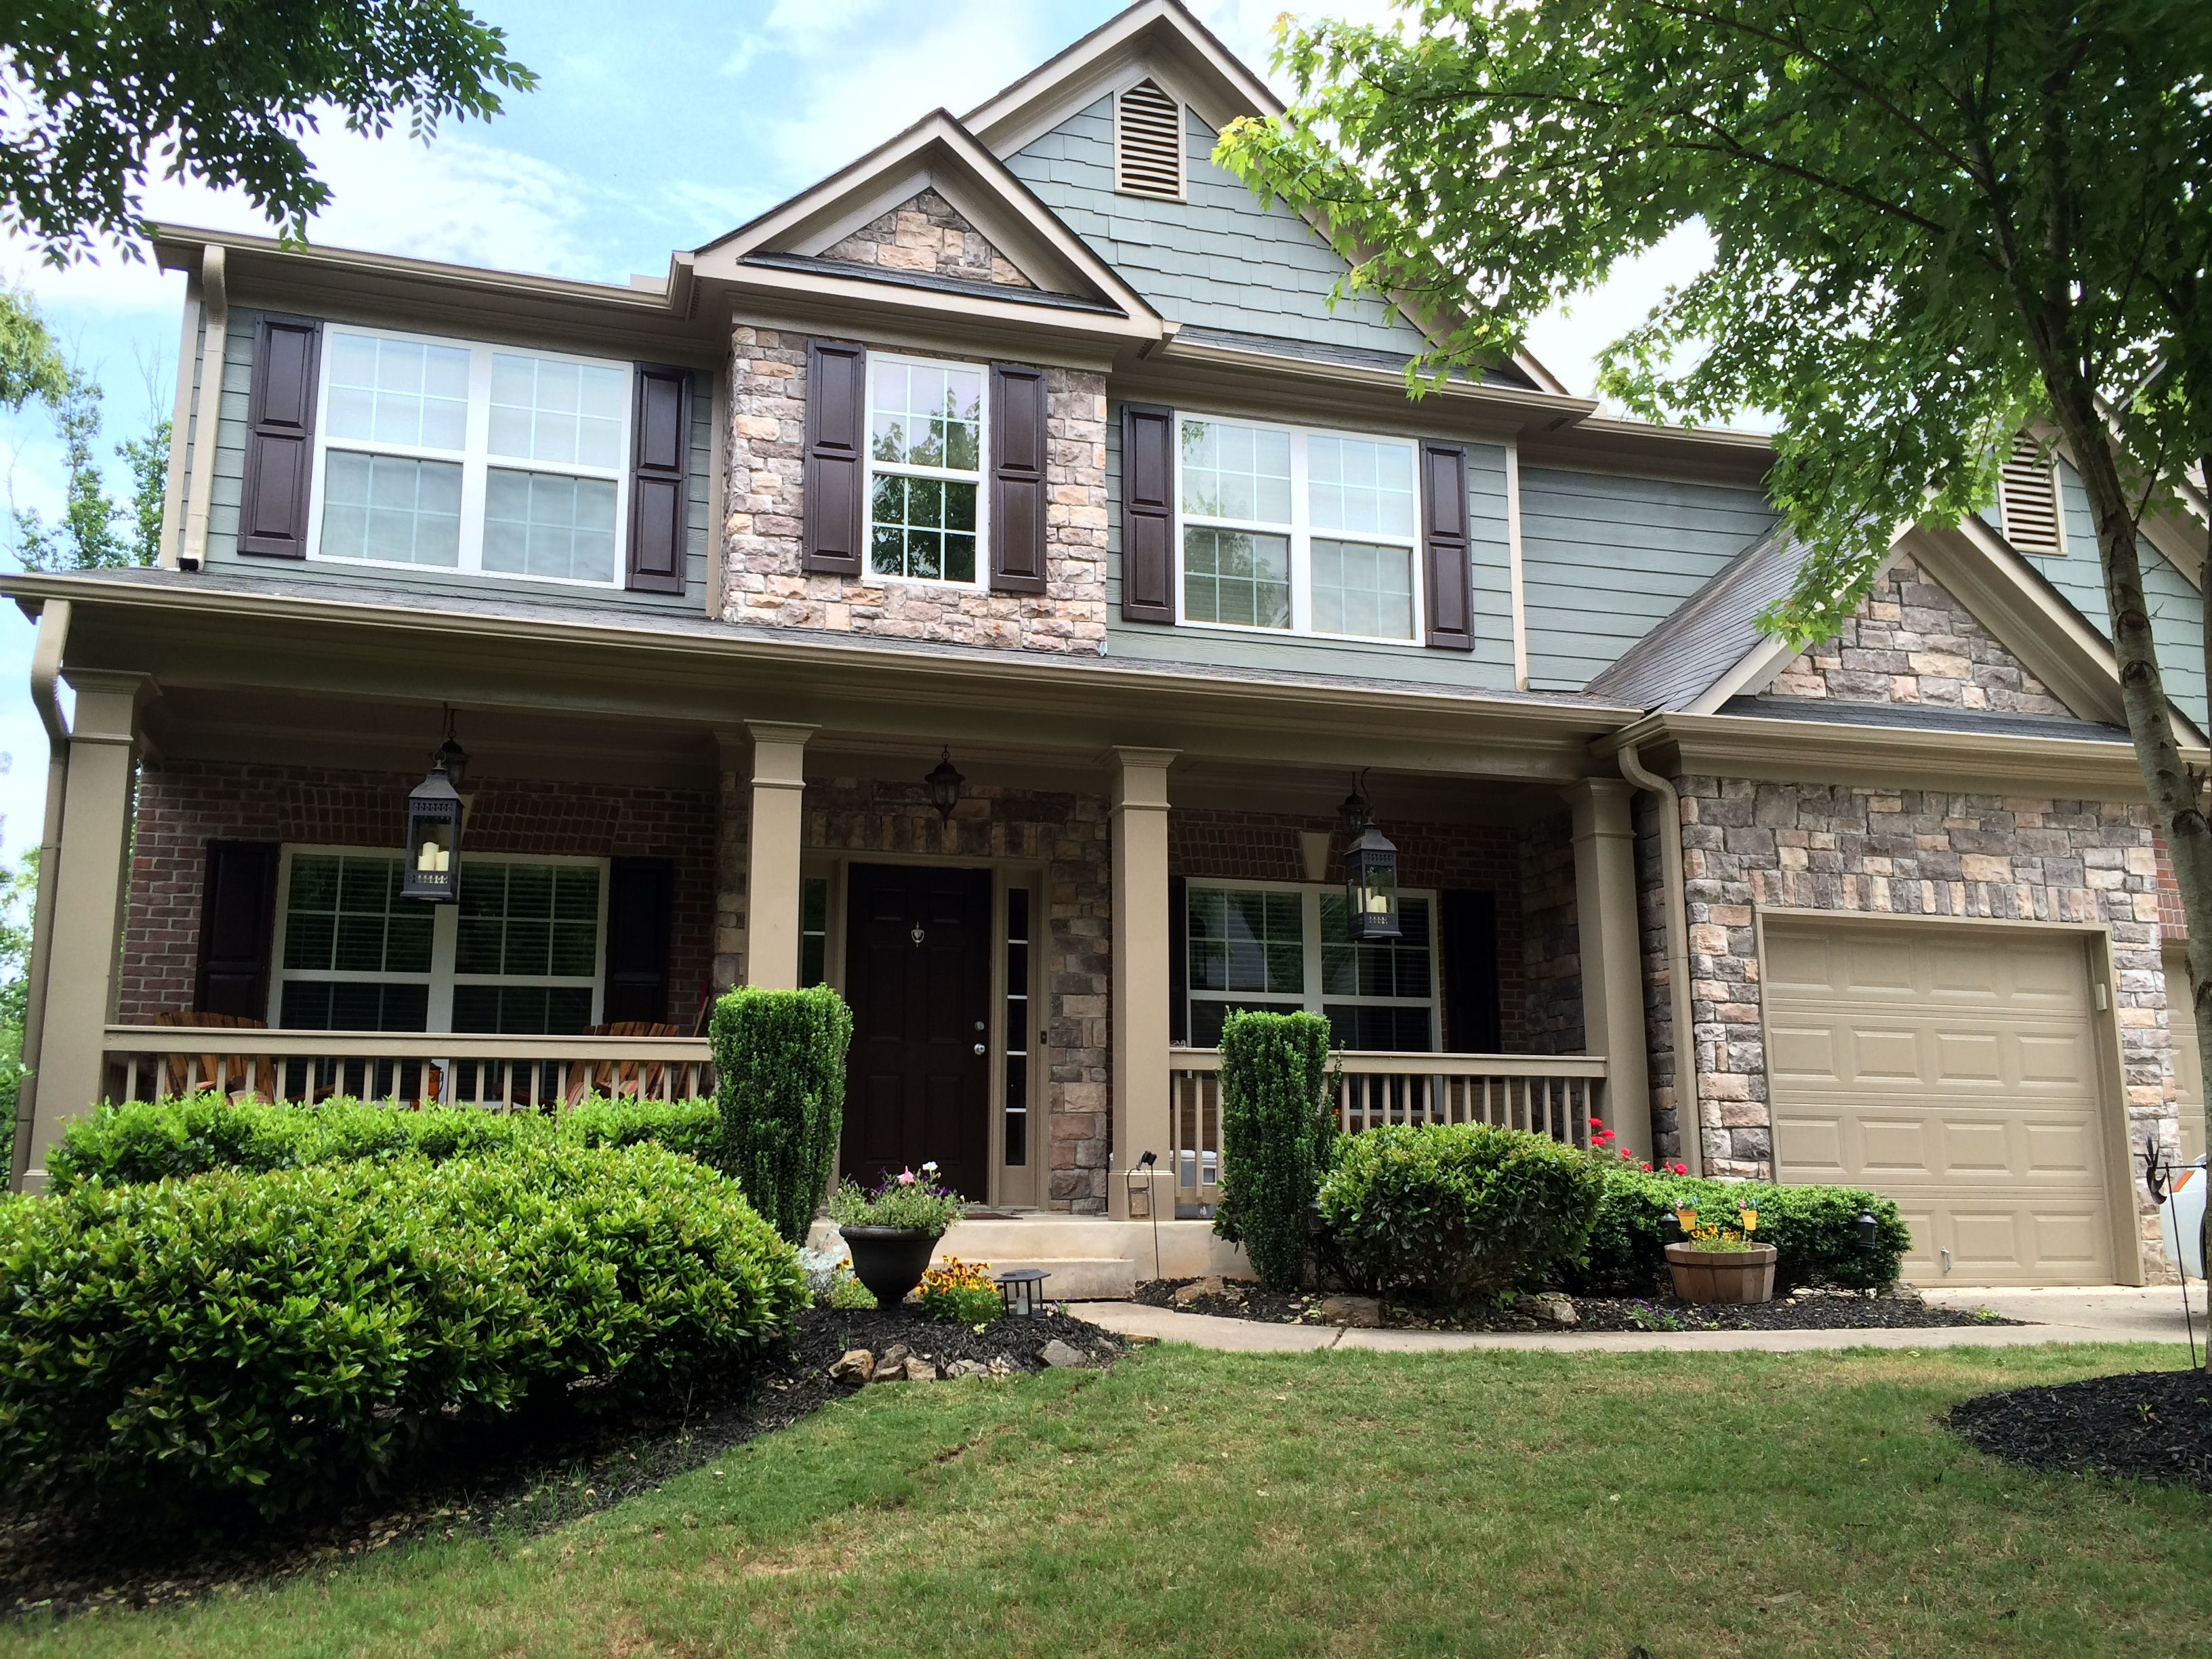 Newly painted sherwin williams thunderous exterior - Sherwin williams exterior colors ...